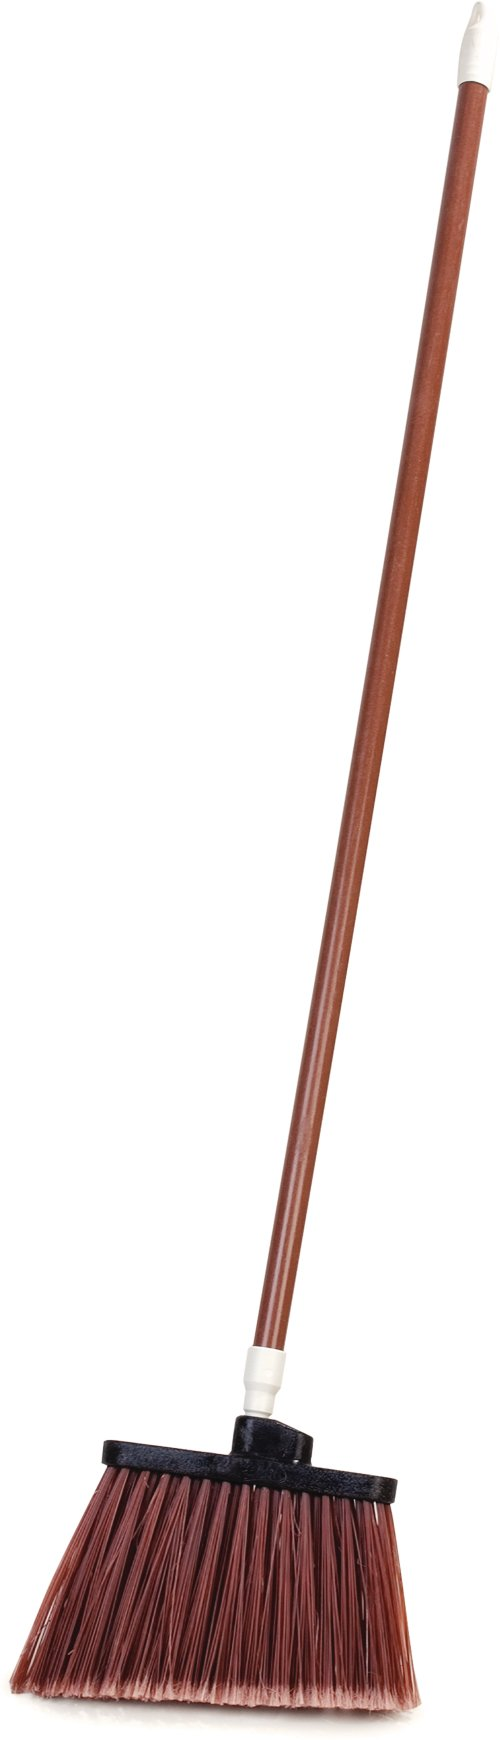 Carlisle 4108201 Sparta Duo-Sweep Flagged Angle Broom with Fiberglass Handle, 54'' Length, Brown (Pack of 12)